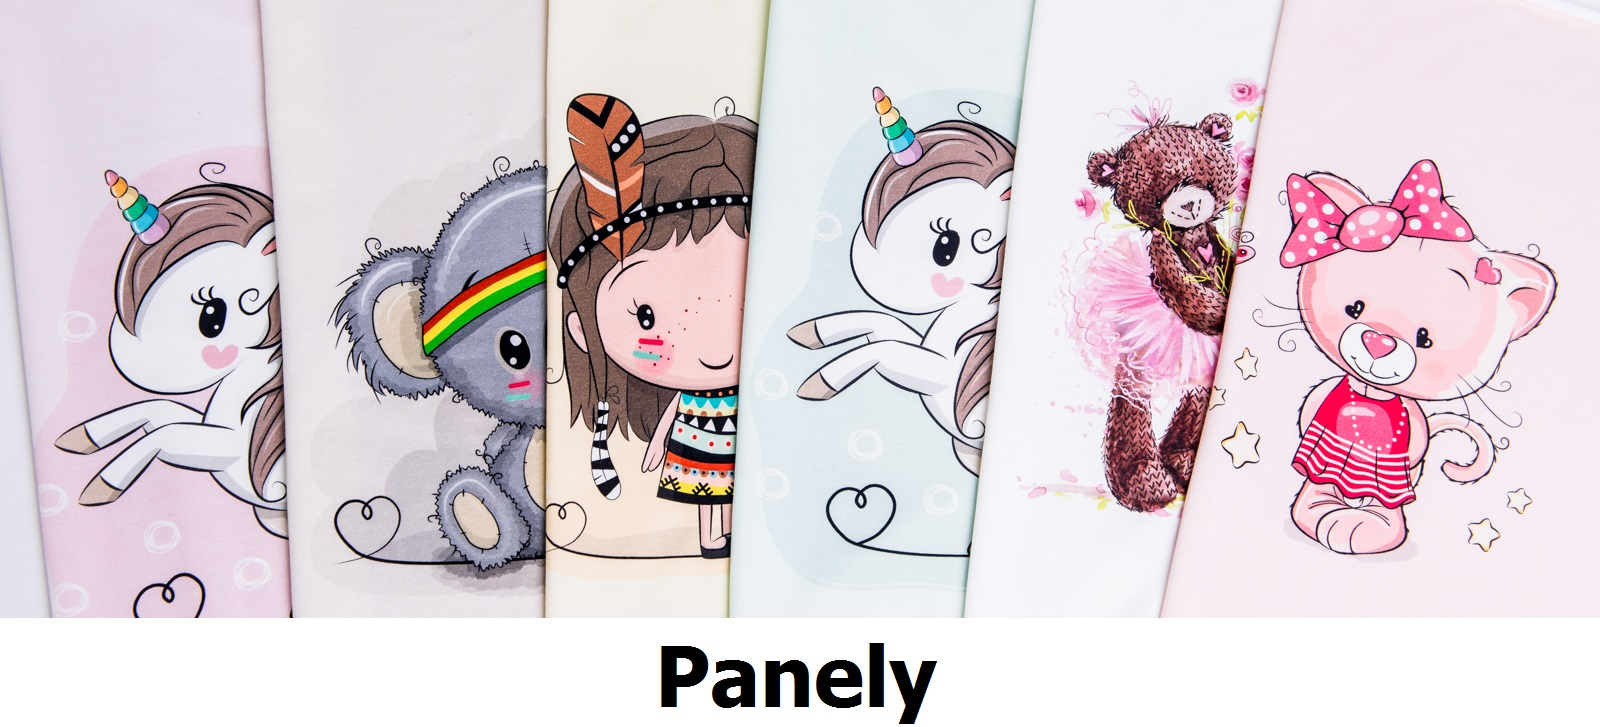 Panely